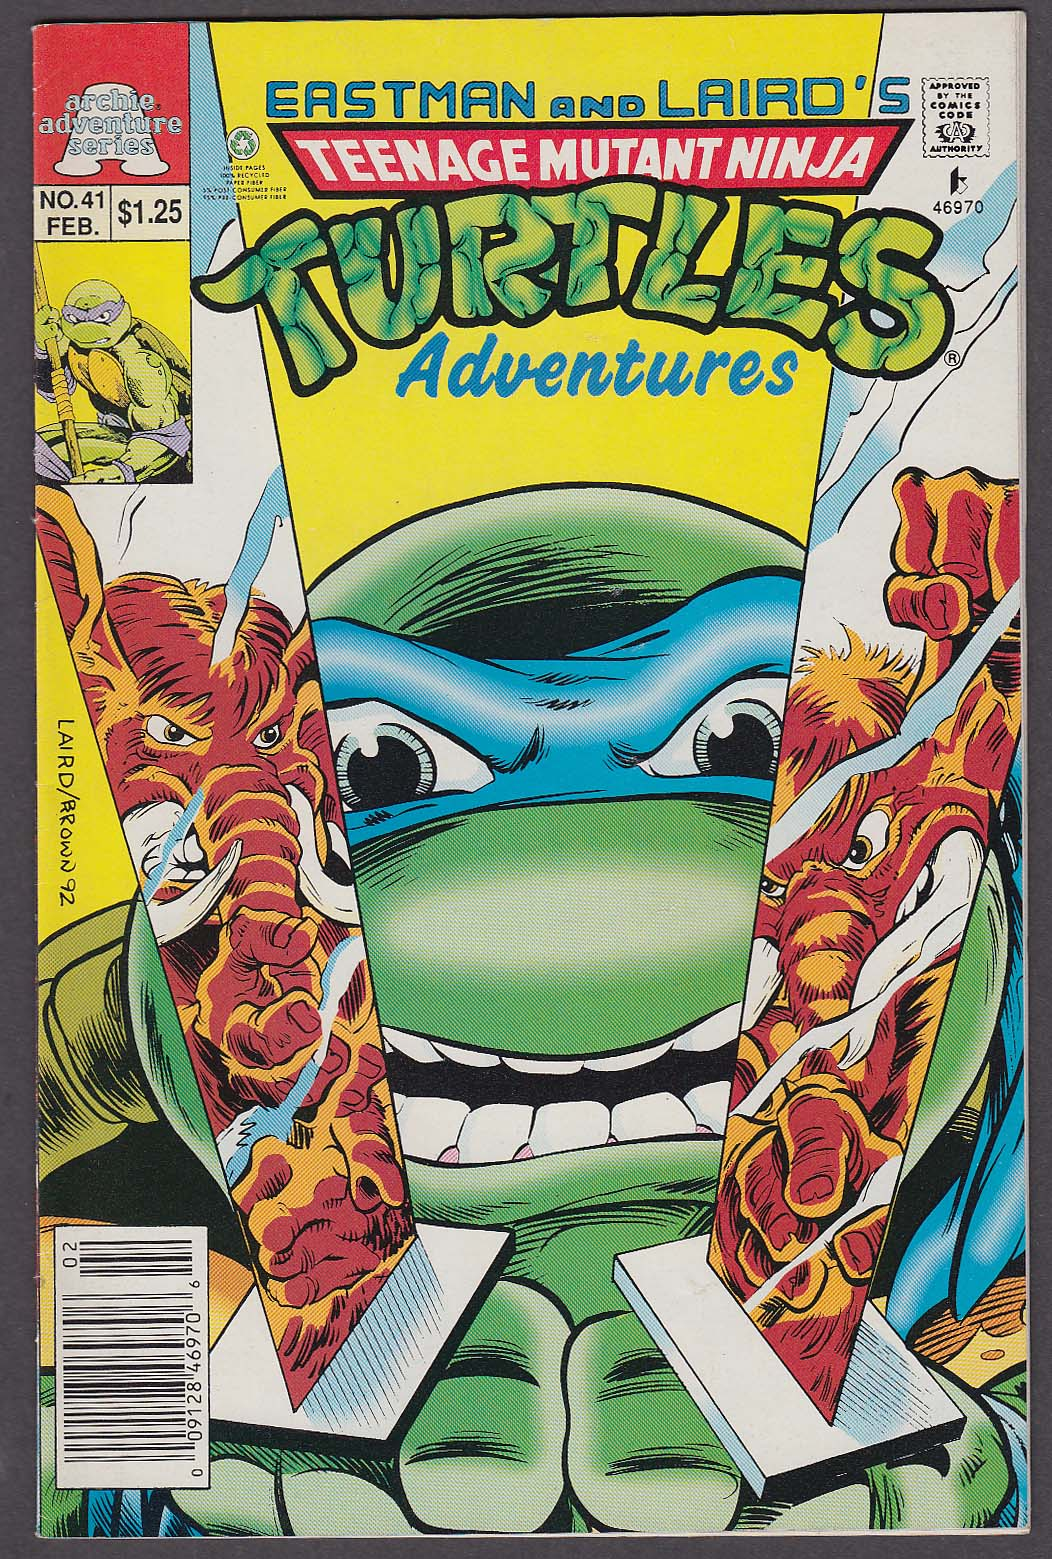 TEENAGE MUTANT NINJA TURTLES ADVENTURES #41 Archie comic book 2 1993